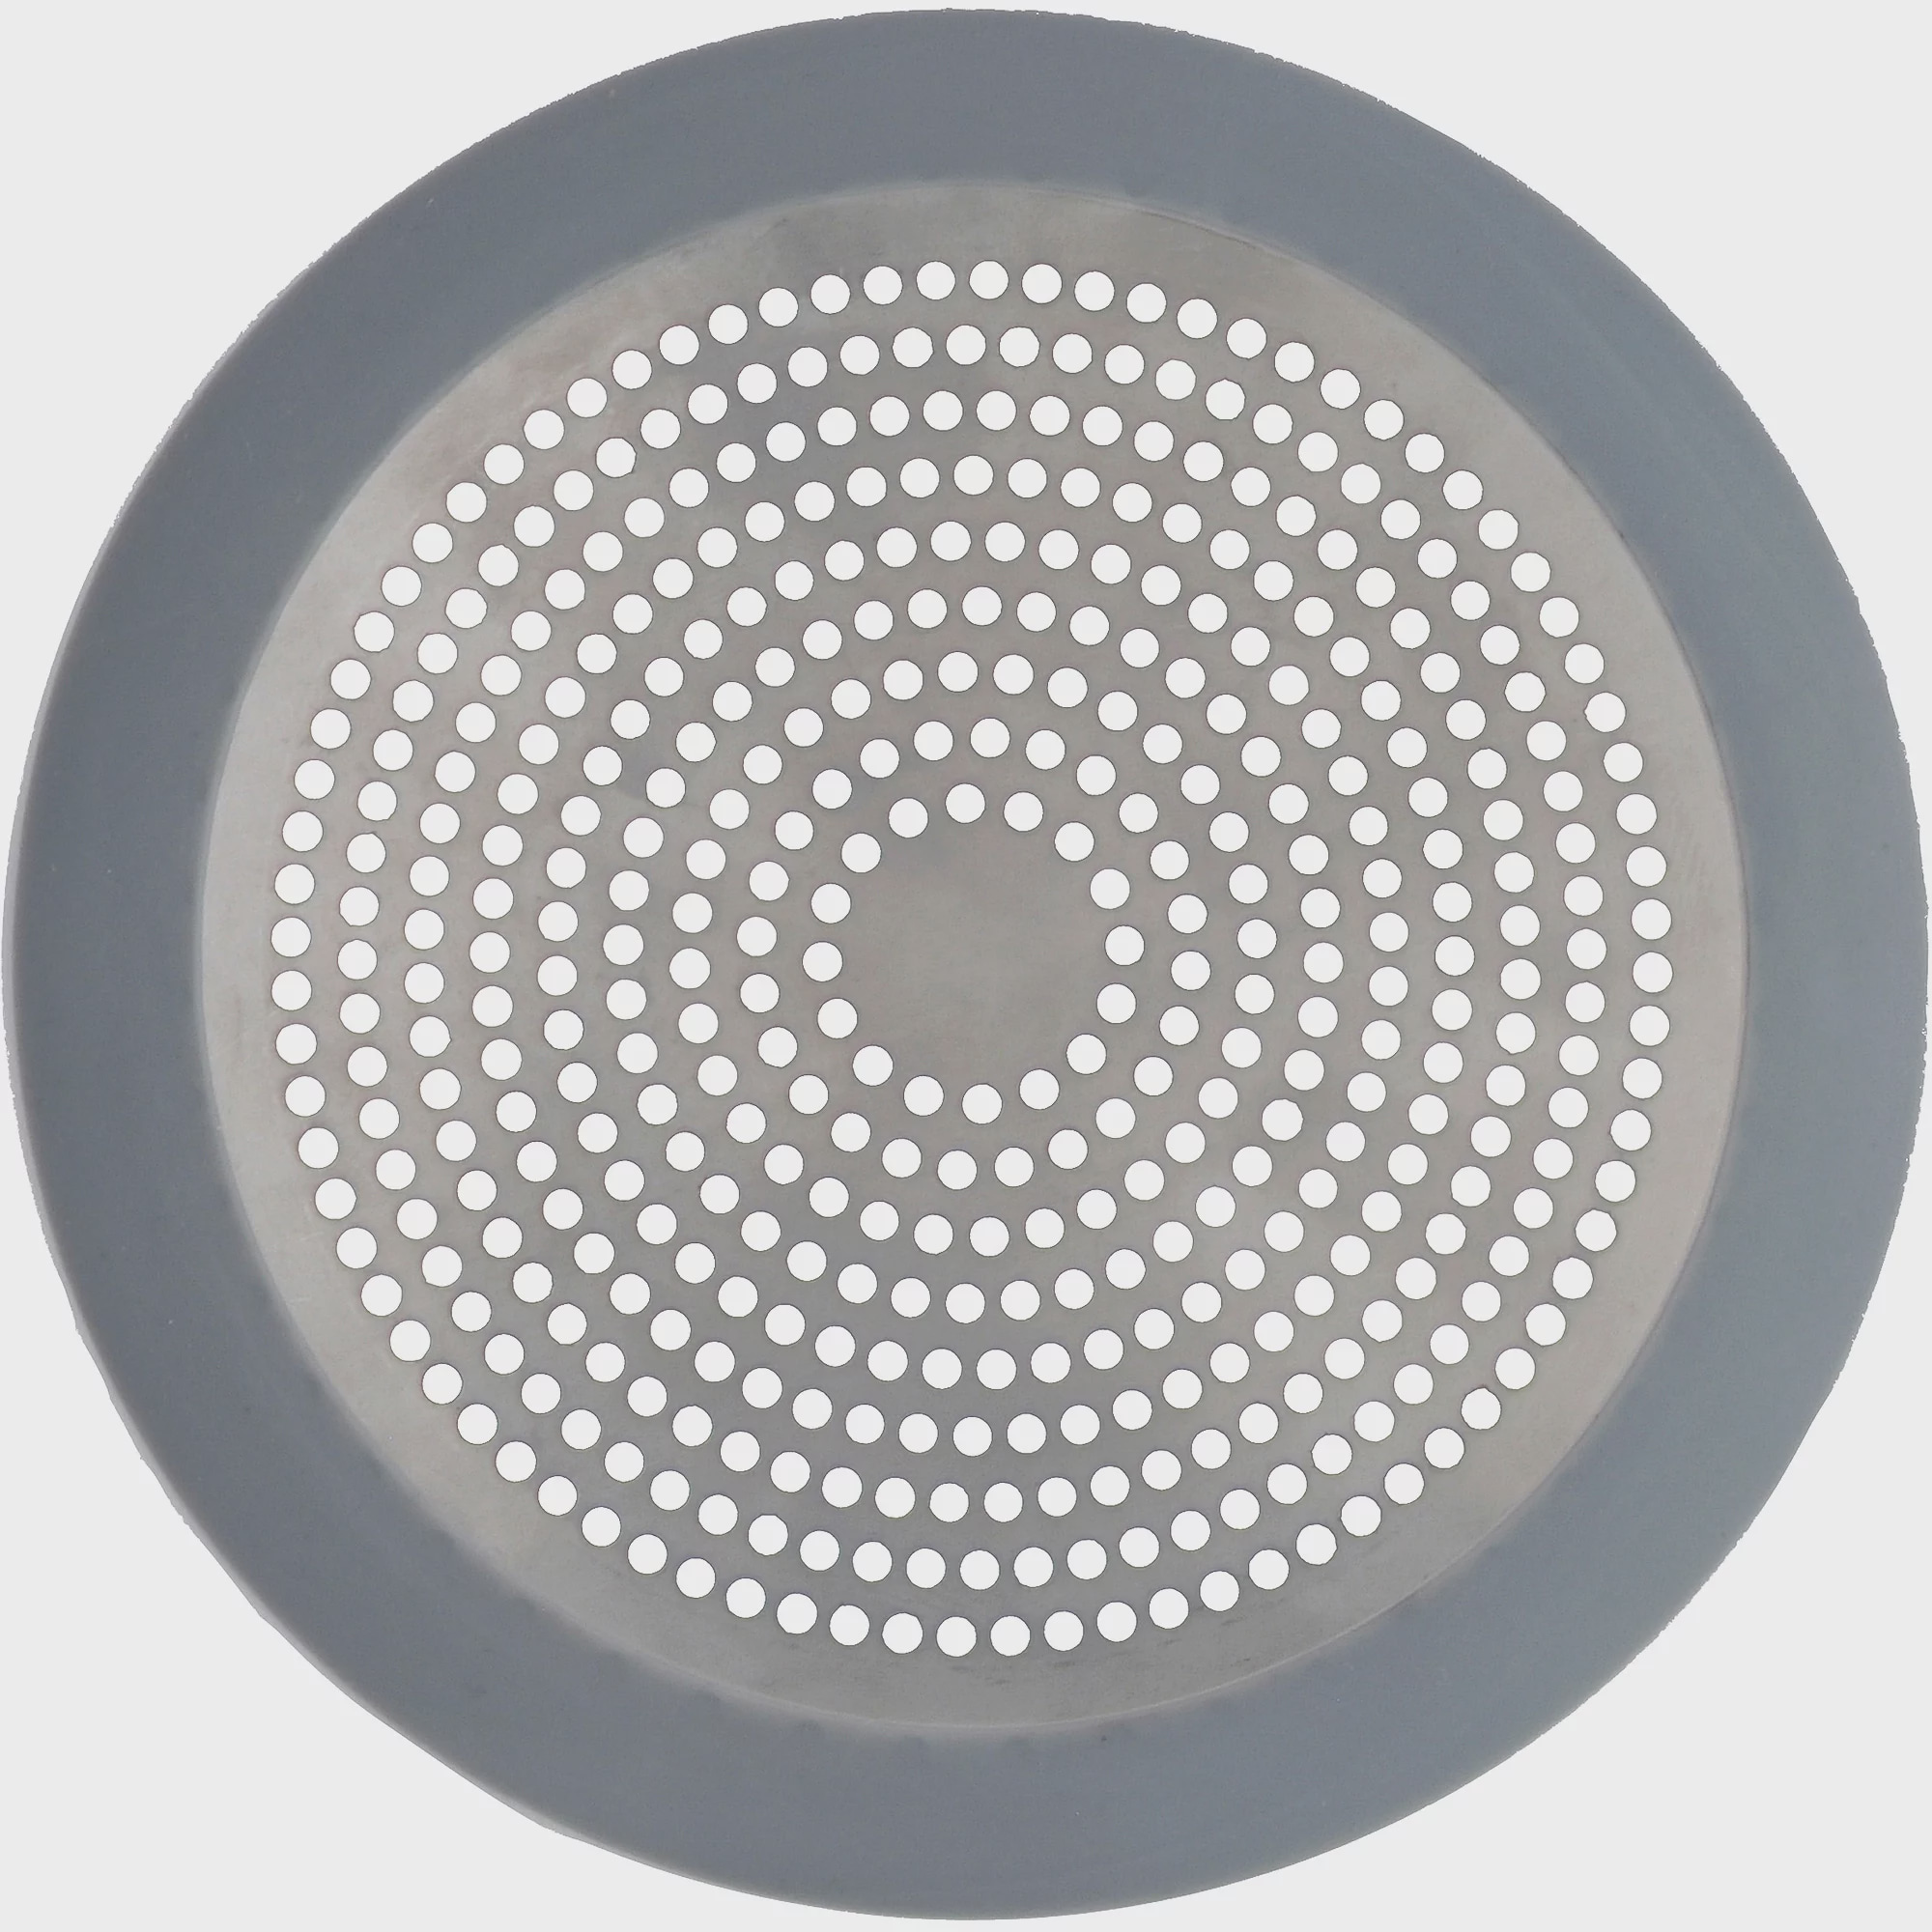 Peerless Metal Shower Strainer With Rubber Gasket by Generic